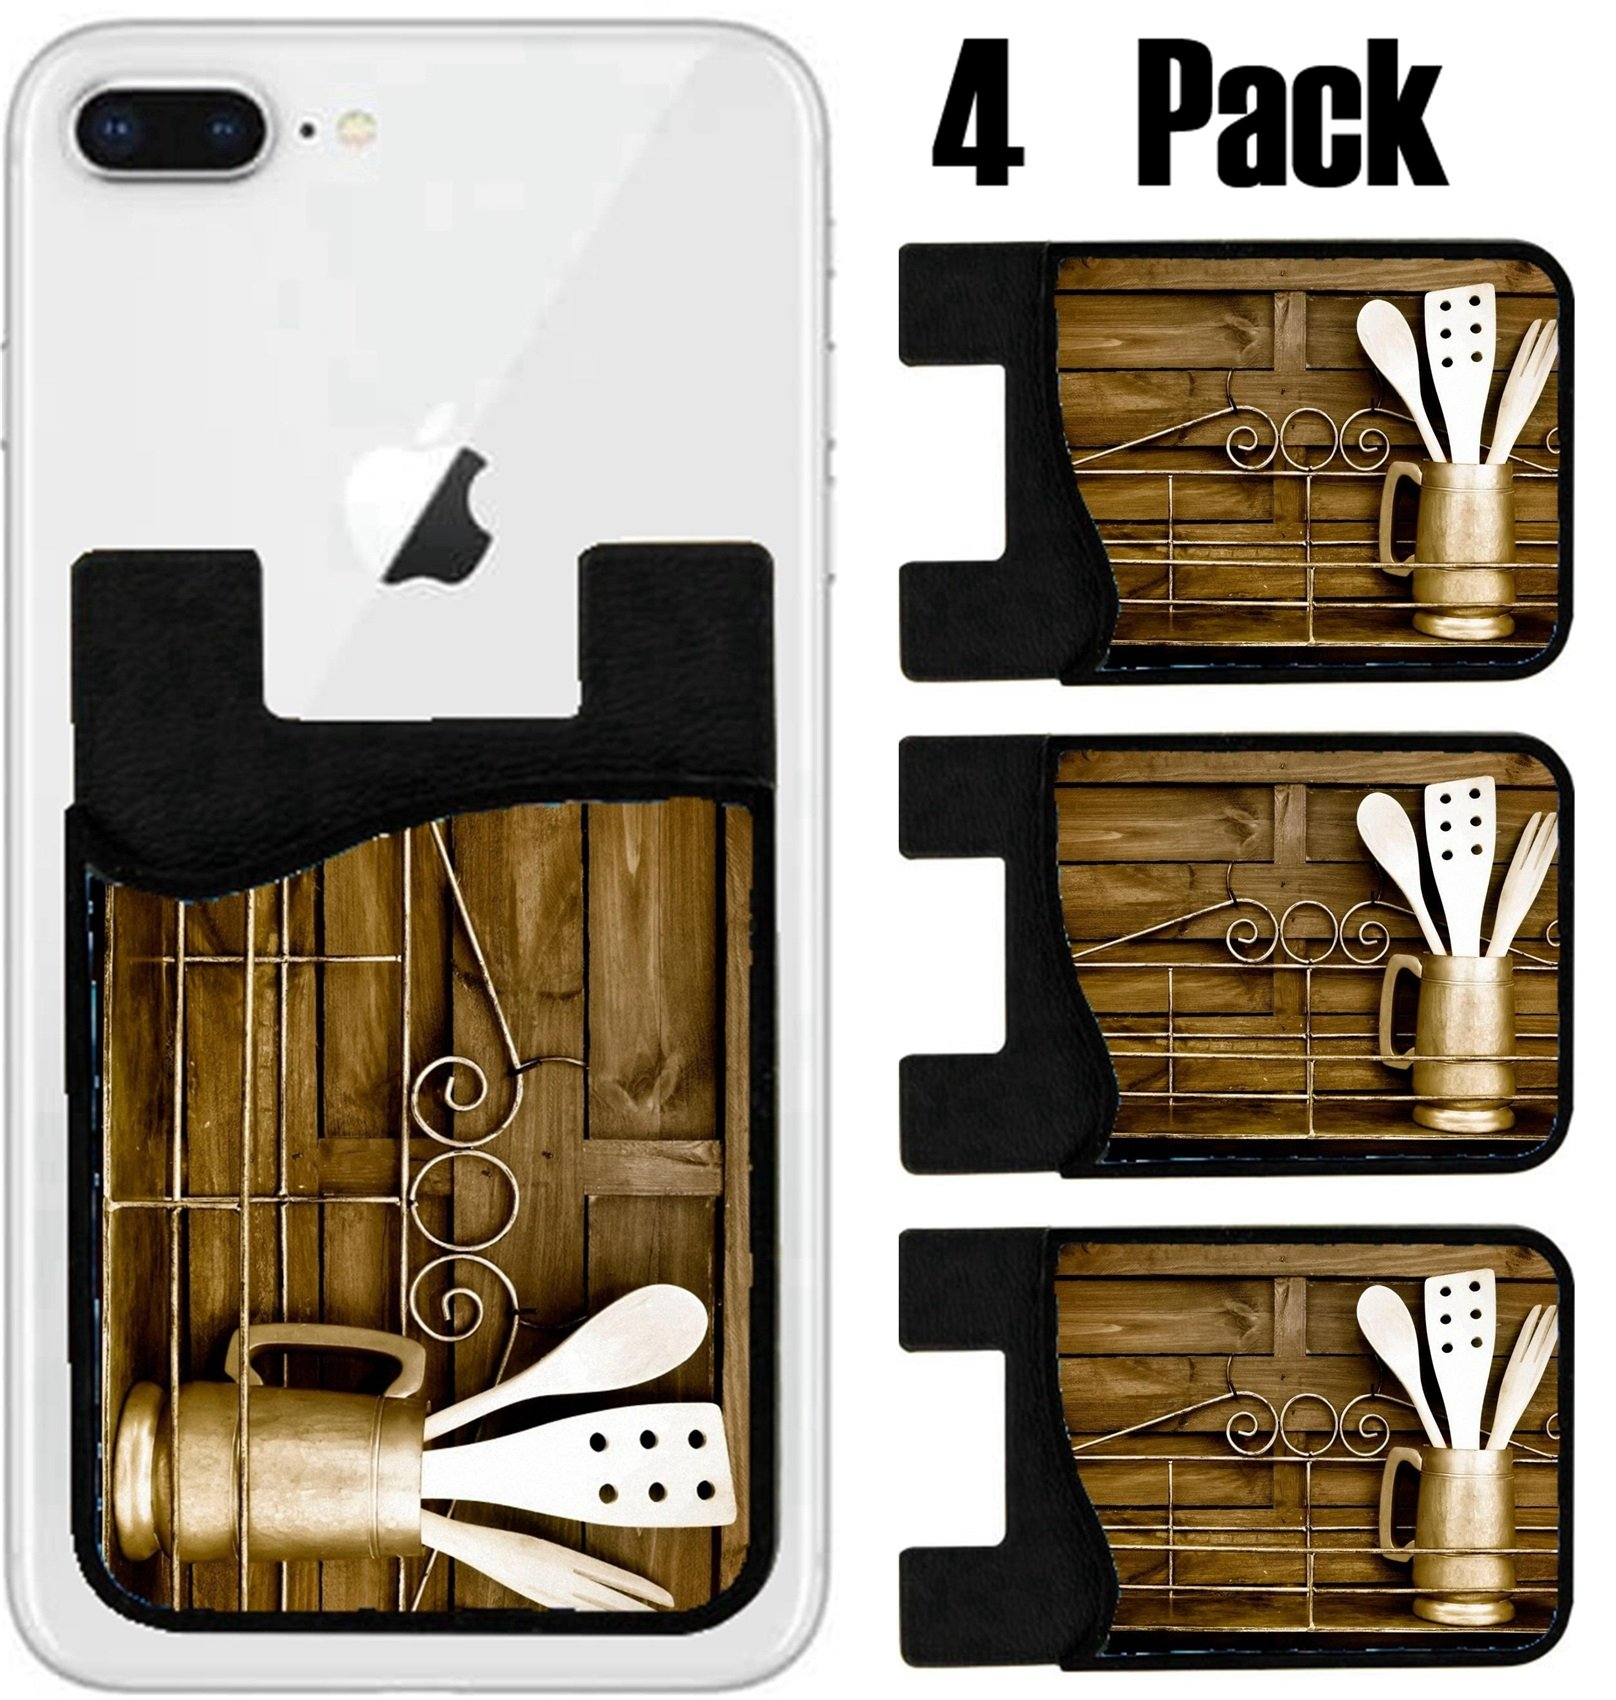 MSD Phone Card holder, sleeve/wallet for iPhone Samsung Android and all smartphones with removable microfiber screen cleaner Silicone card Caddy(4 Pack) IMAGE ID 29089178 Kitchen cooking utensils wood